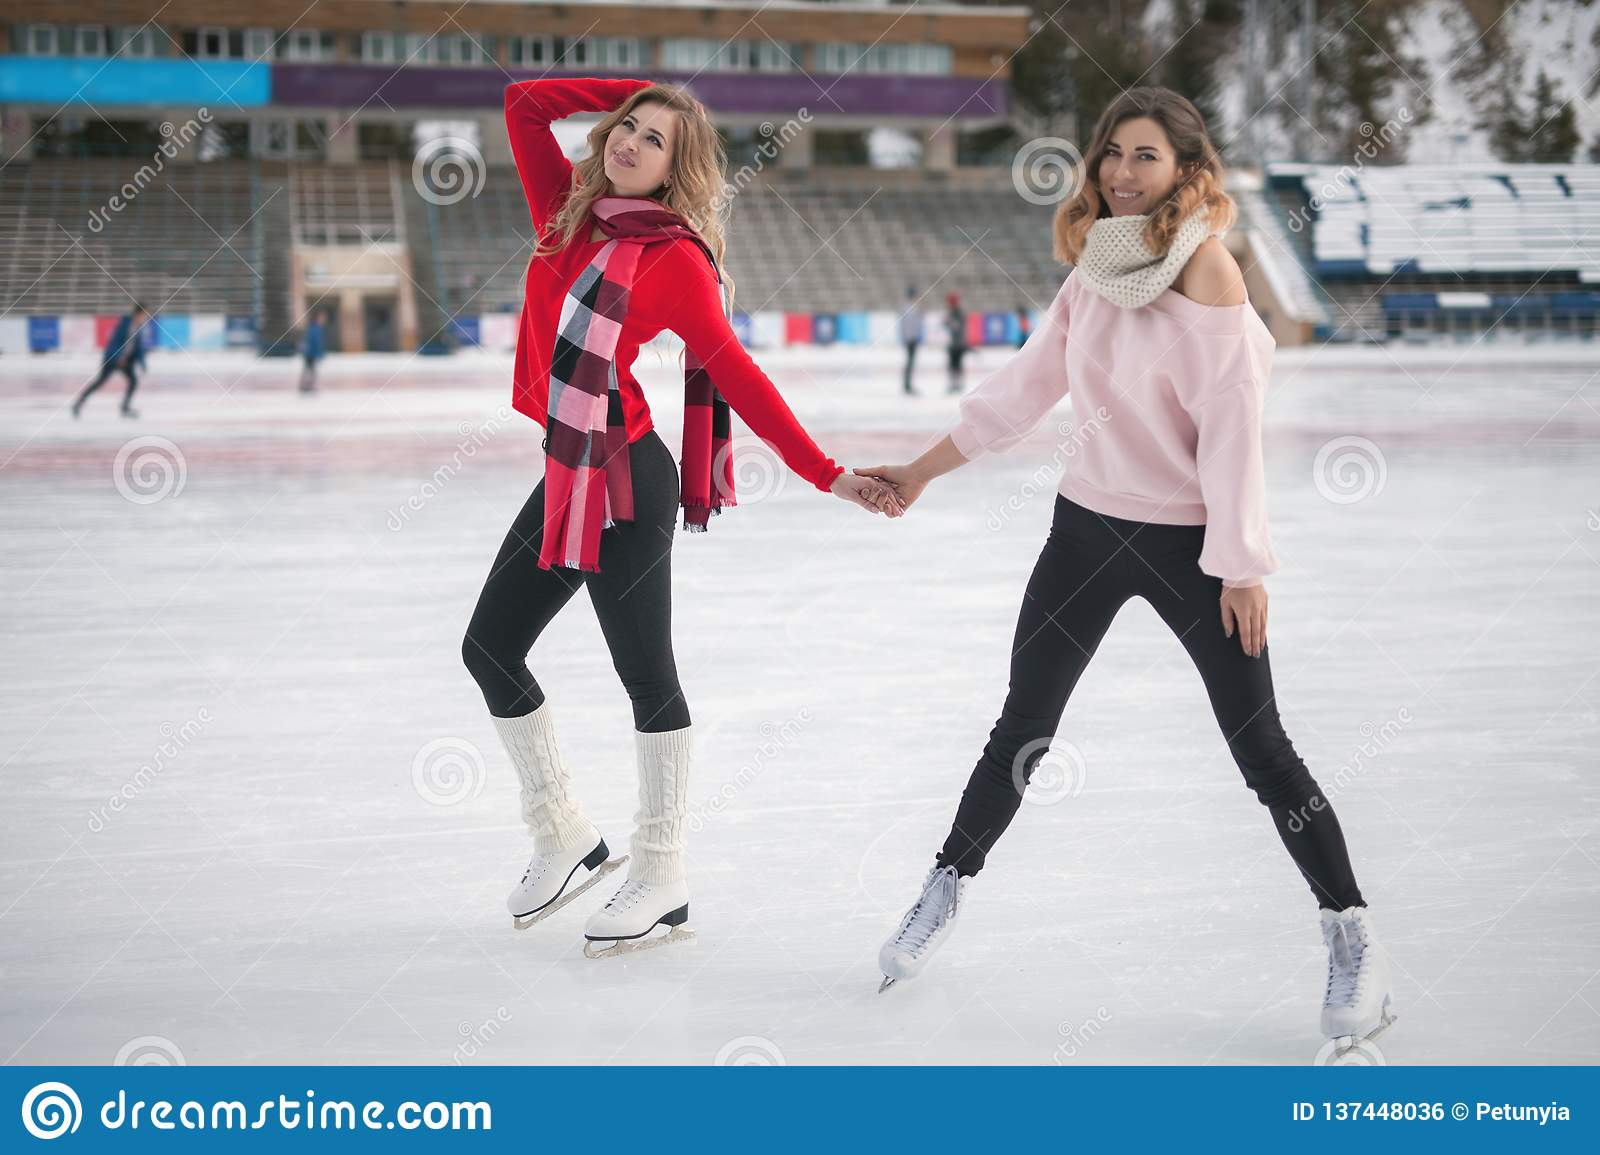 Does not funny ice skating